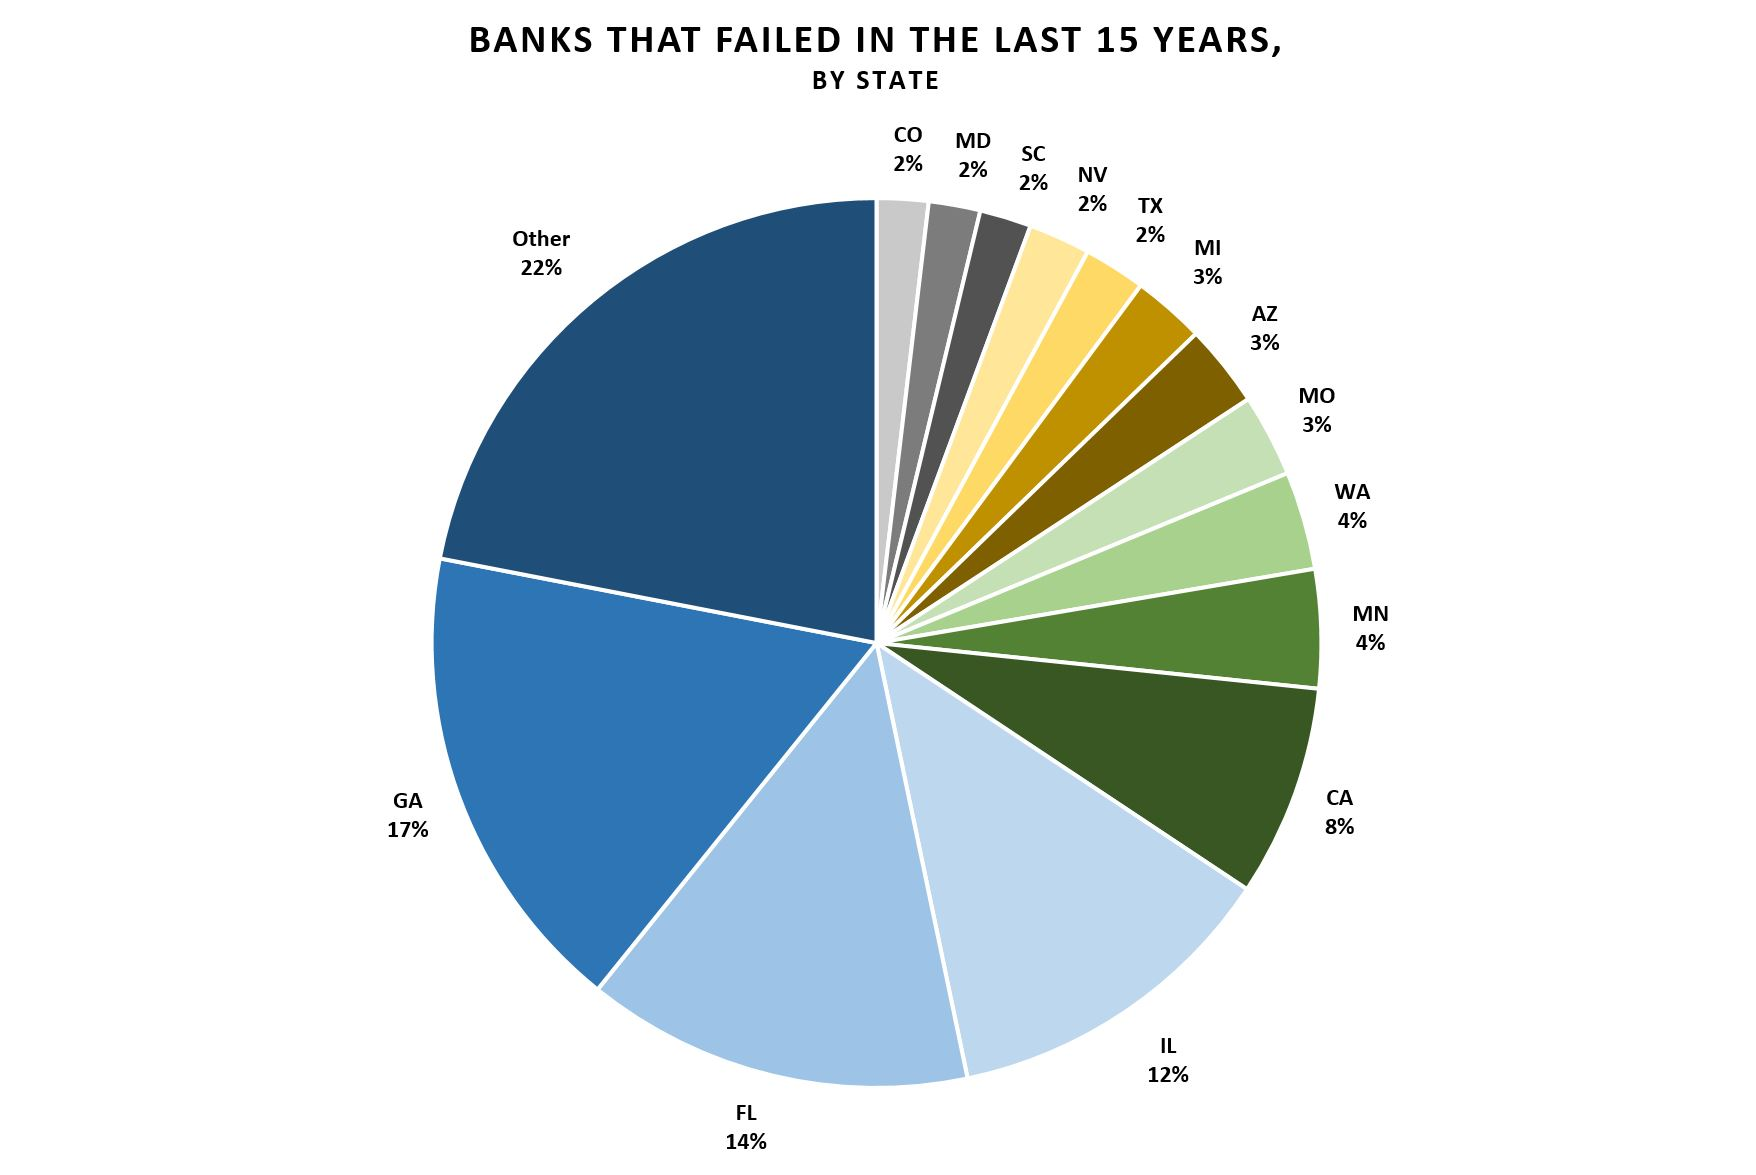 Banks that failed in the last 15 years